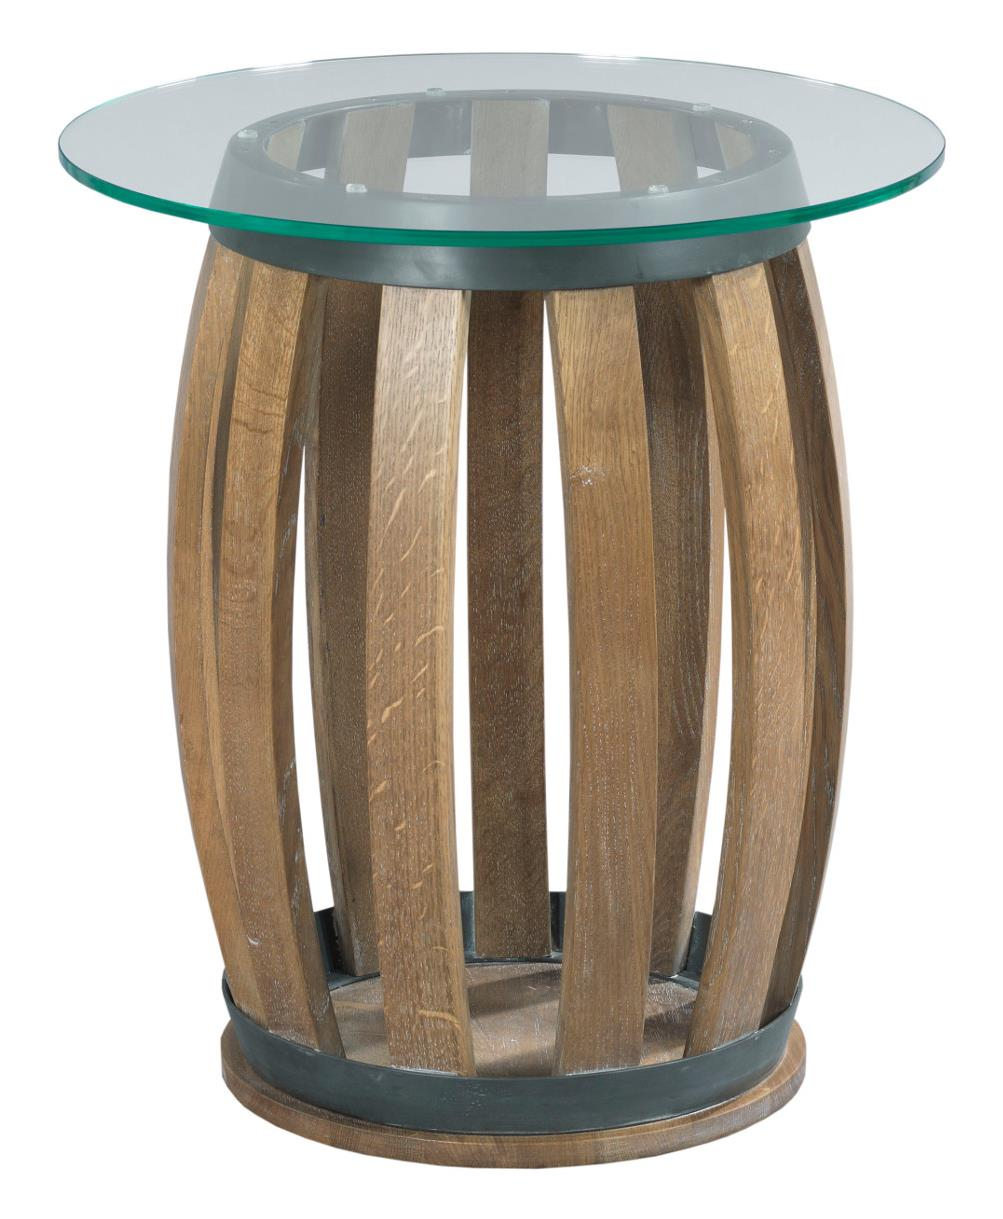 steve silver brewster inch round barrel end table marble bar rustic wine accent with tempered glass top pinebrook beach themed bathroom accessories ashley leather sofa pub height